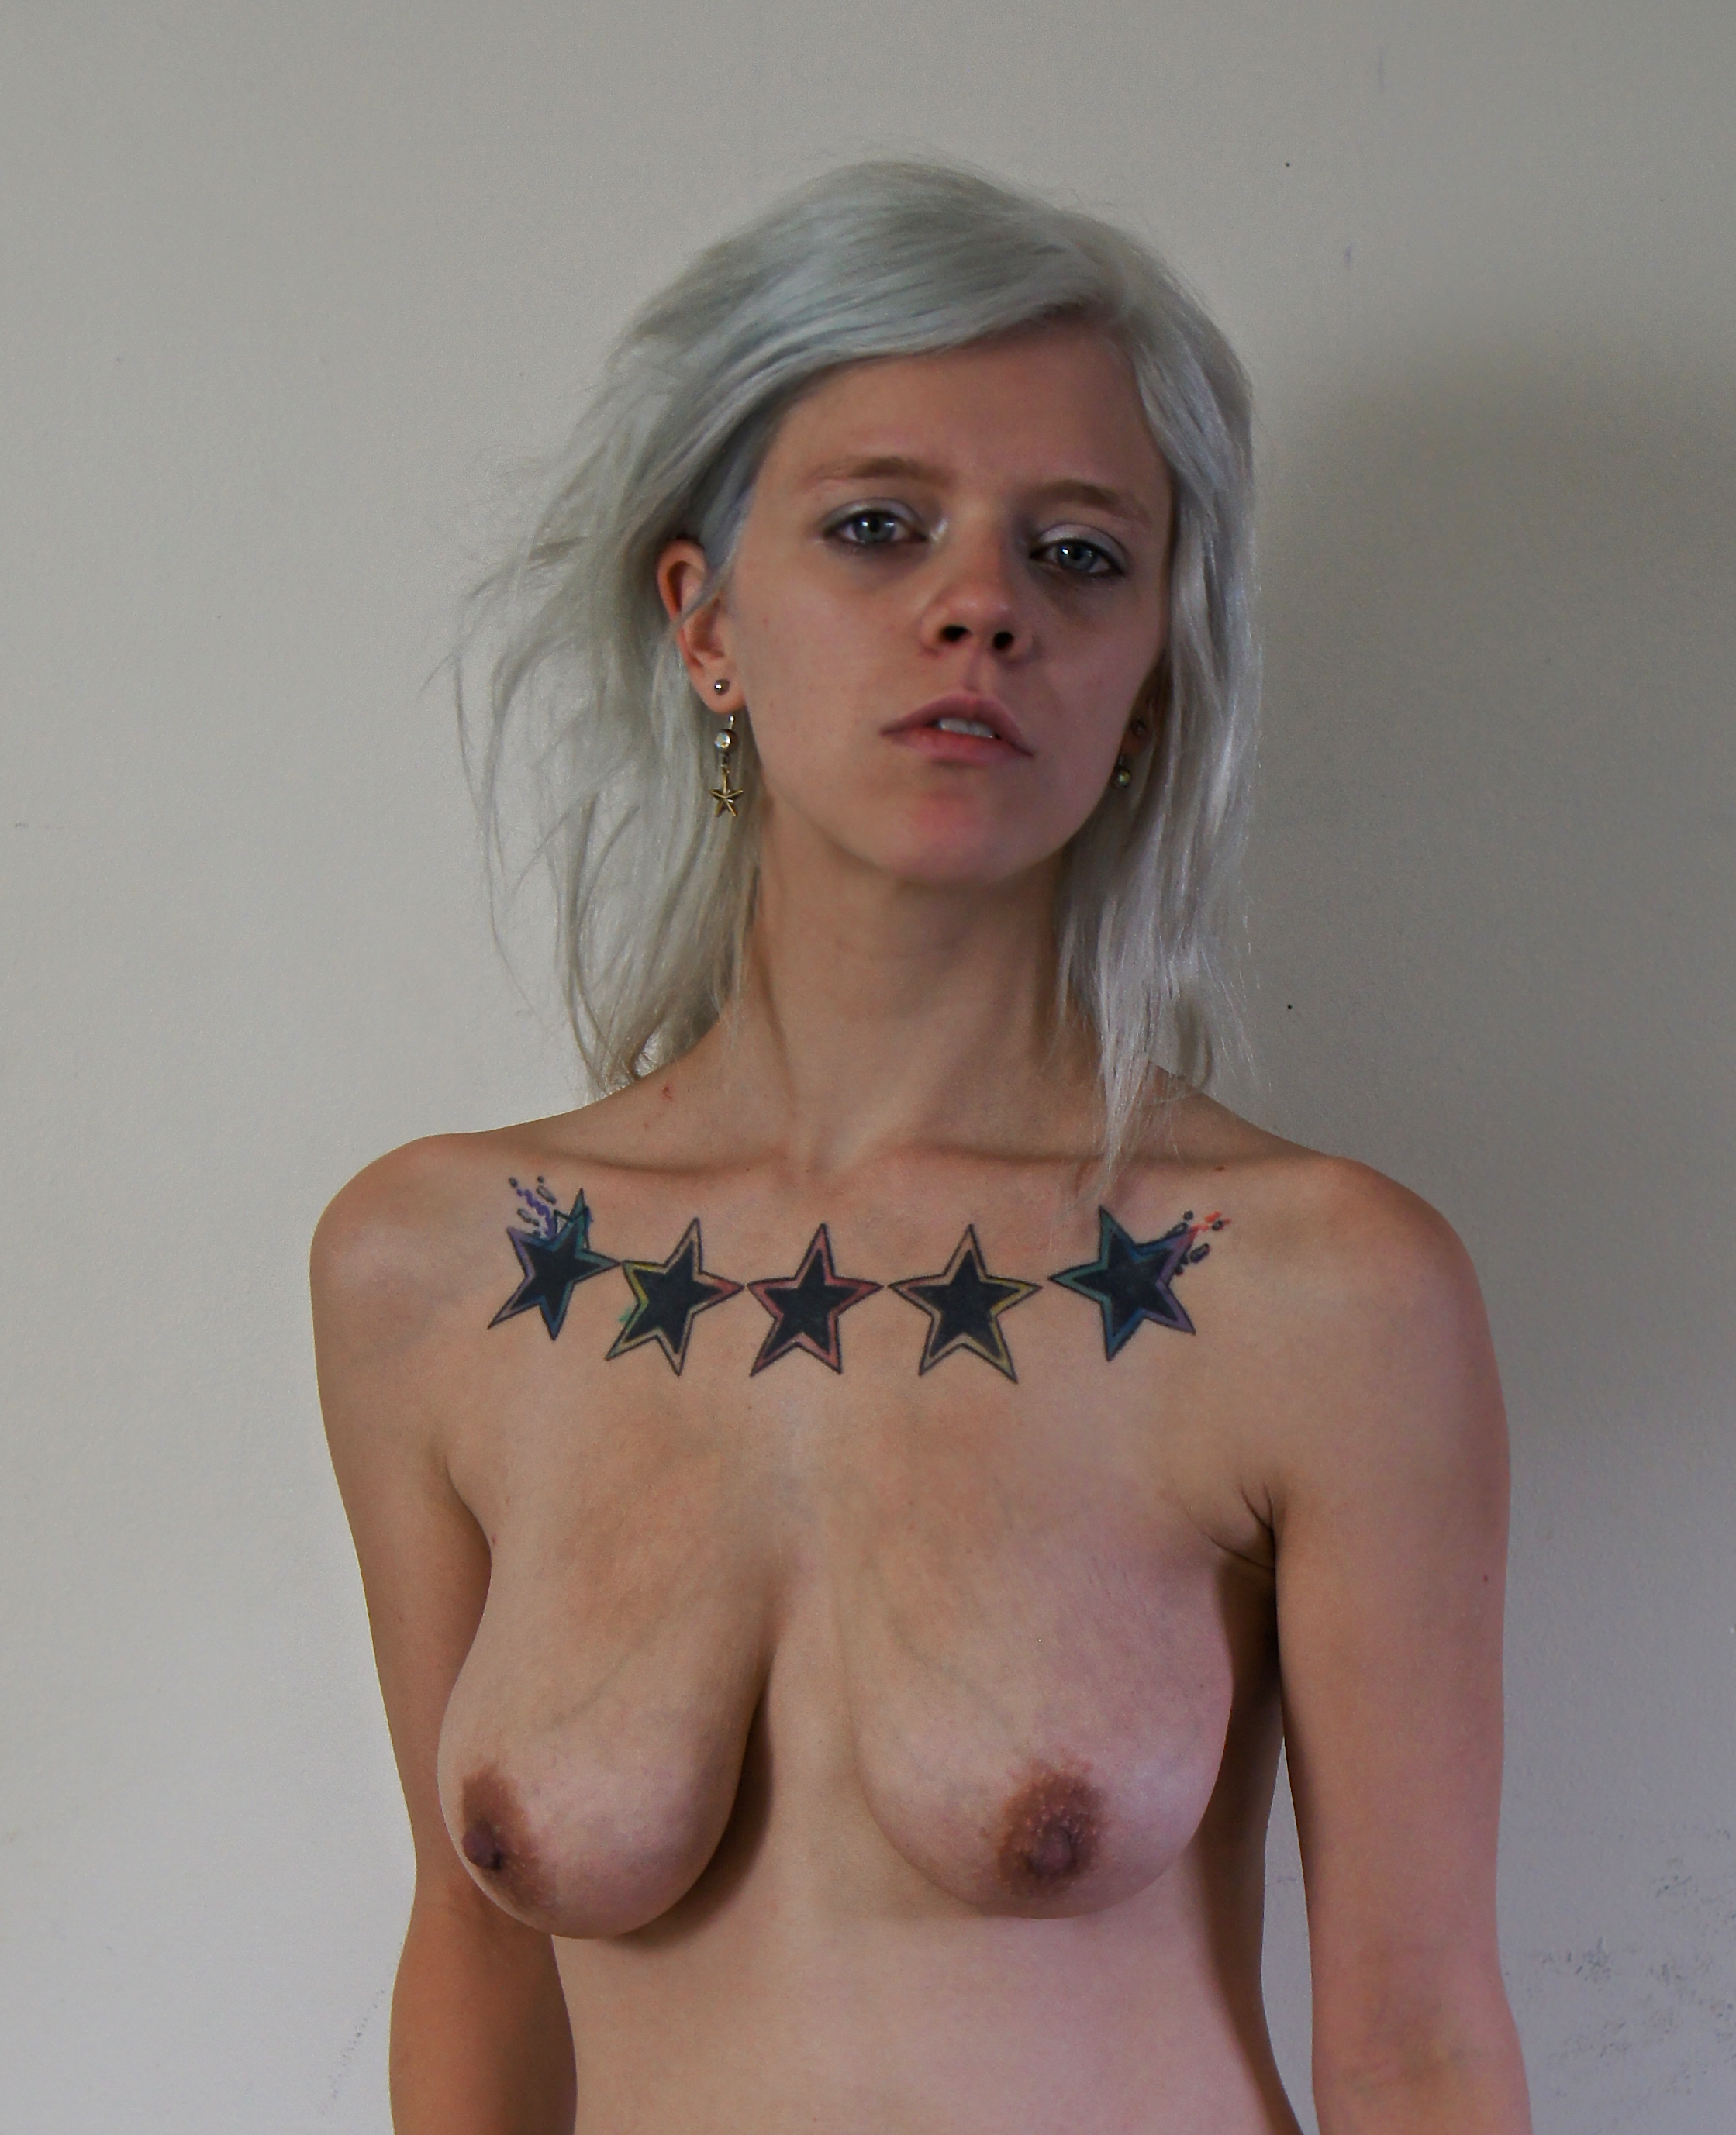 Woman with platinum hair and tattoos